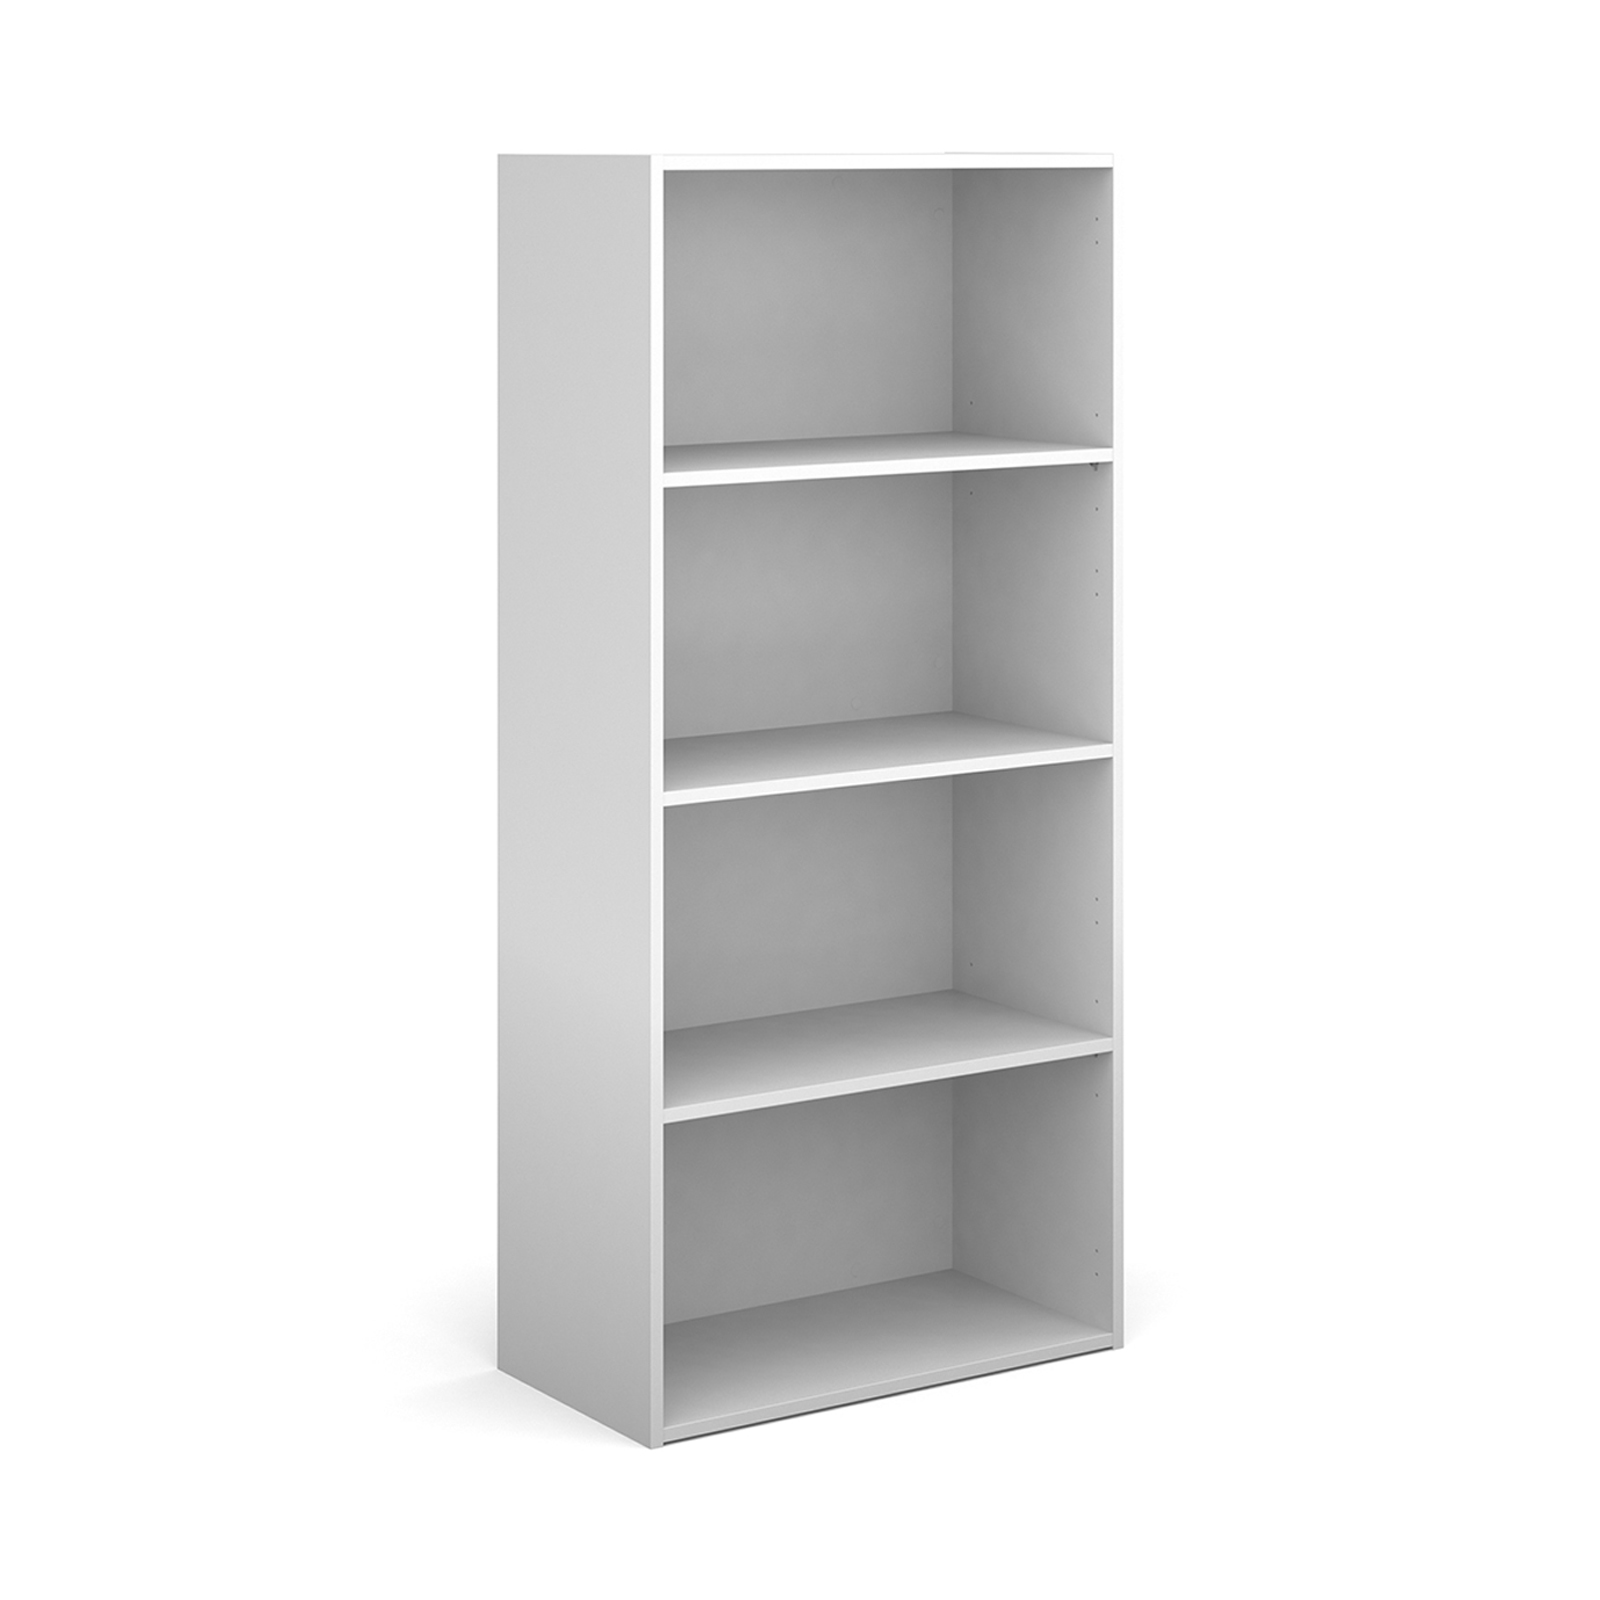 Over 1200mm High Contract bookcase 1630mm high with 3 shelves - white